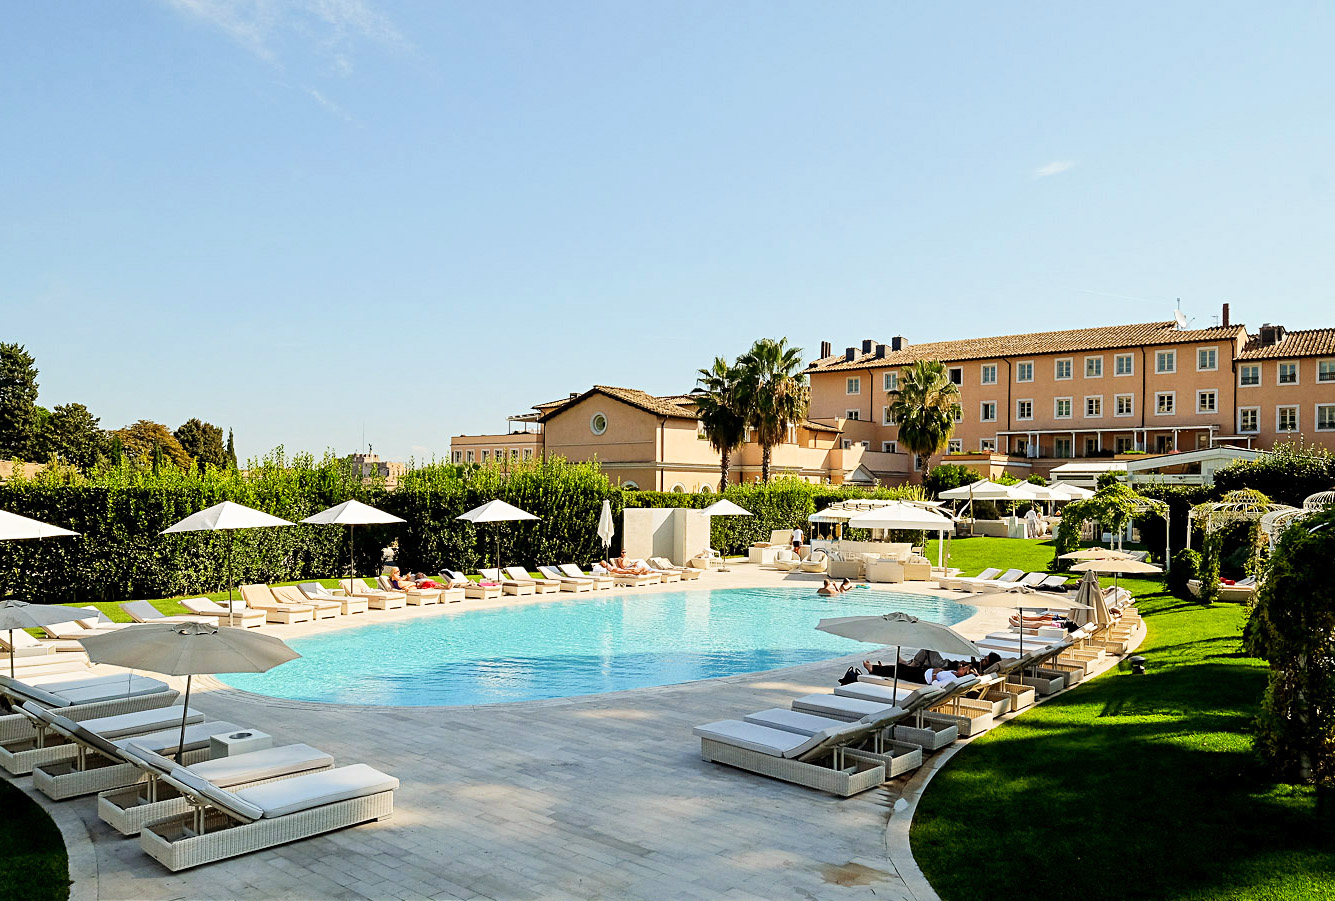 Luxury Stay at Gran Meliá Rome Villa Agrippina